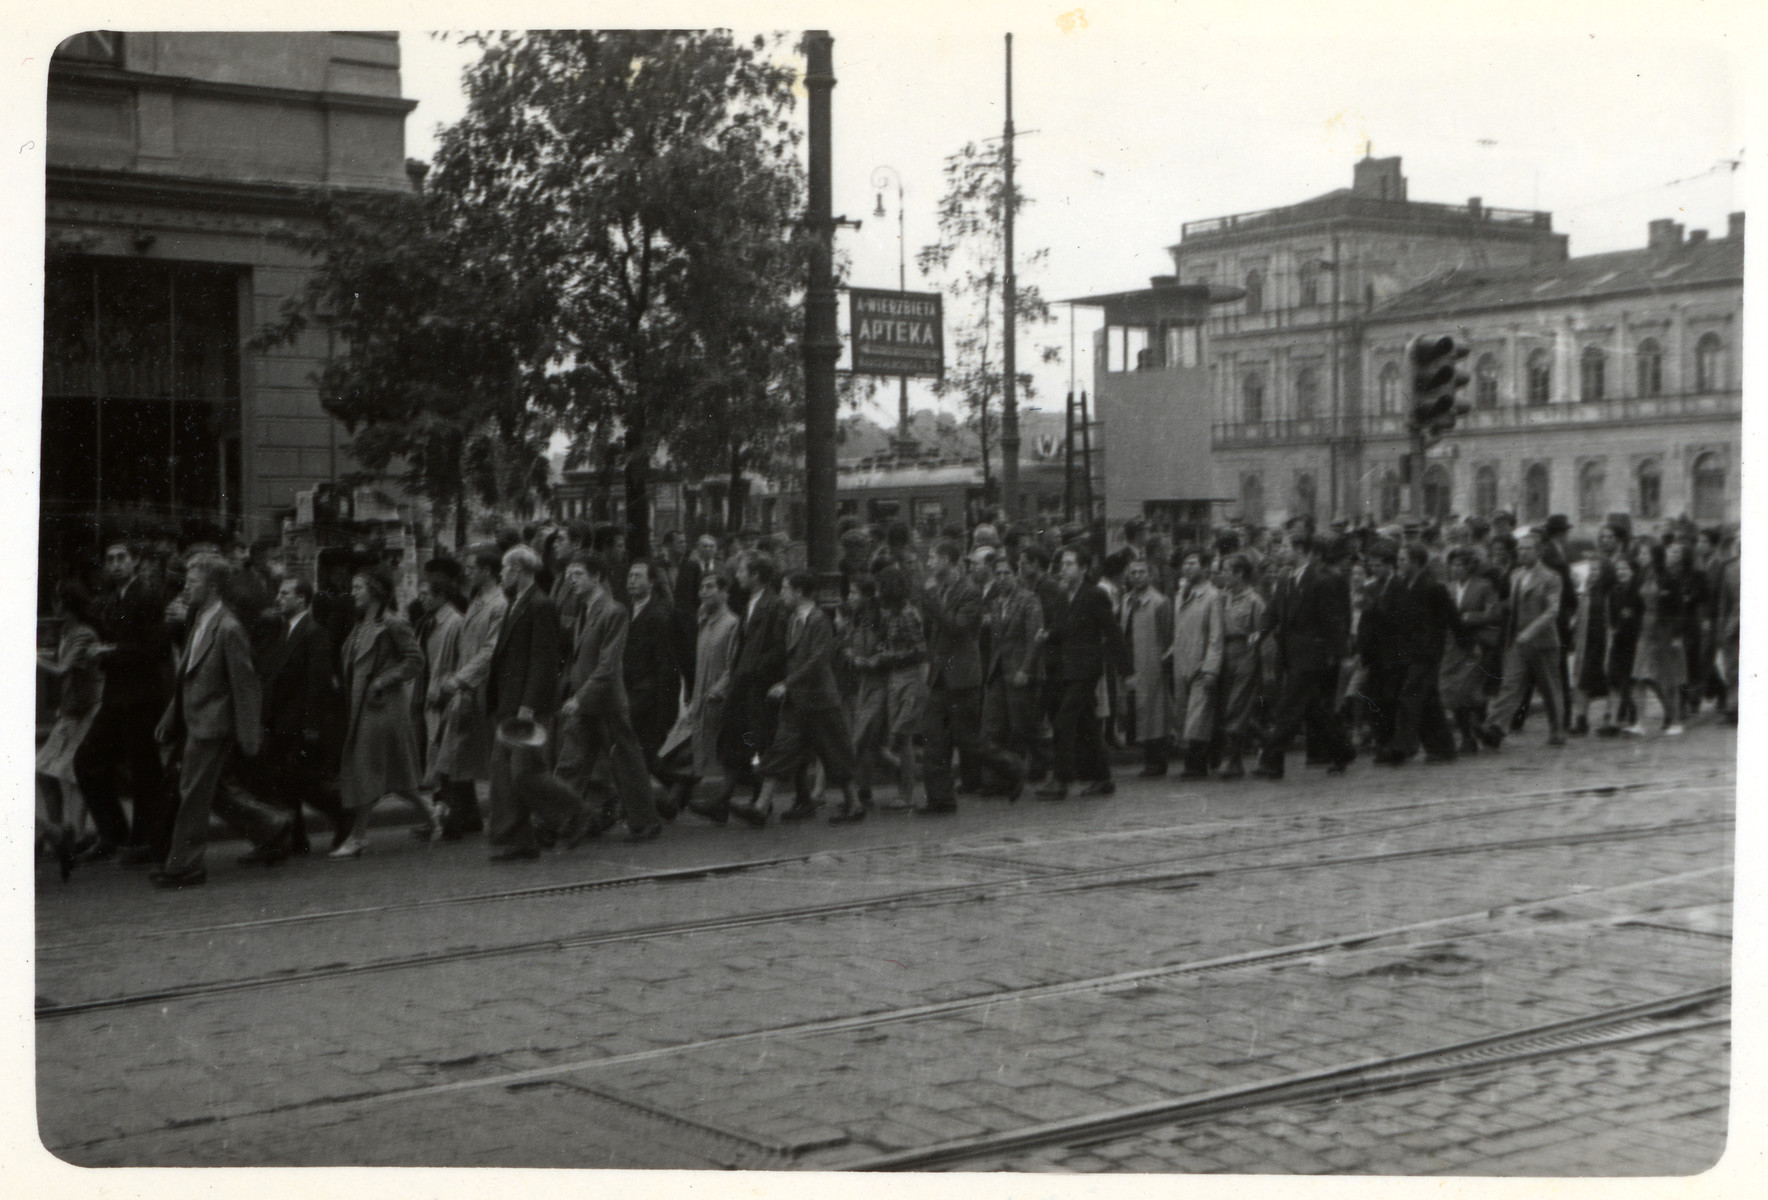 Polish men and women march down a street past a pharmacy in besieged Warsaw.